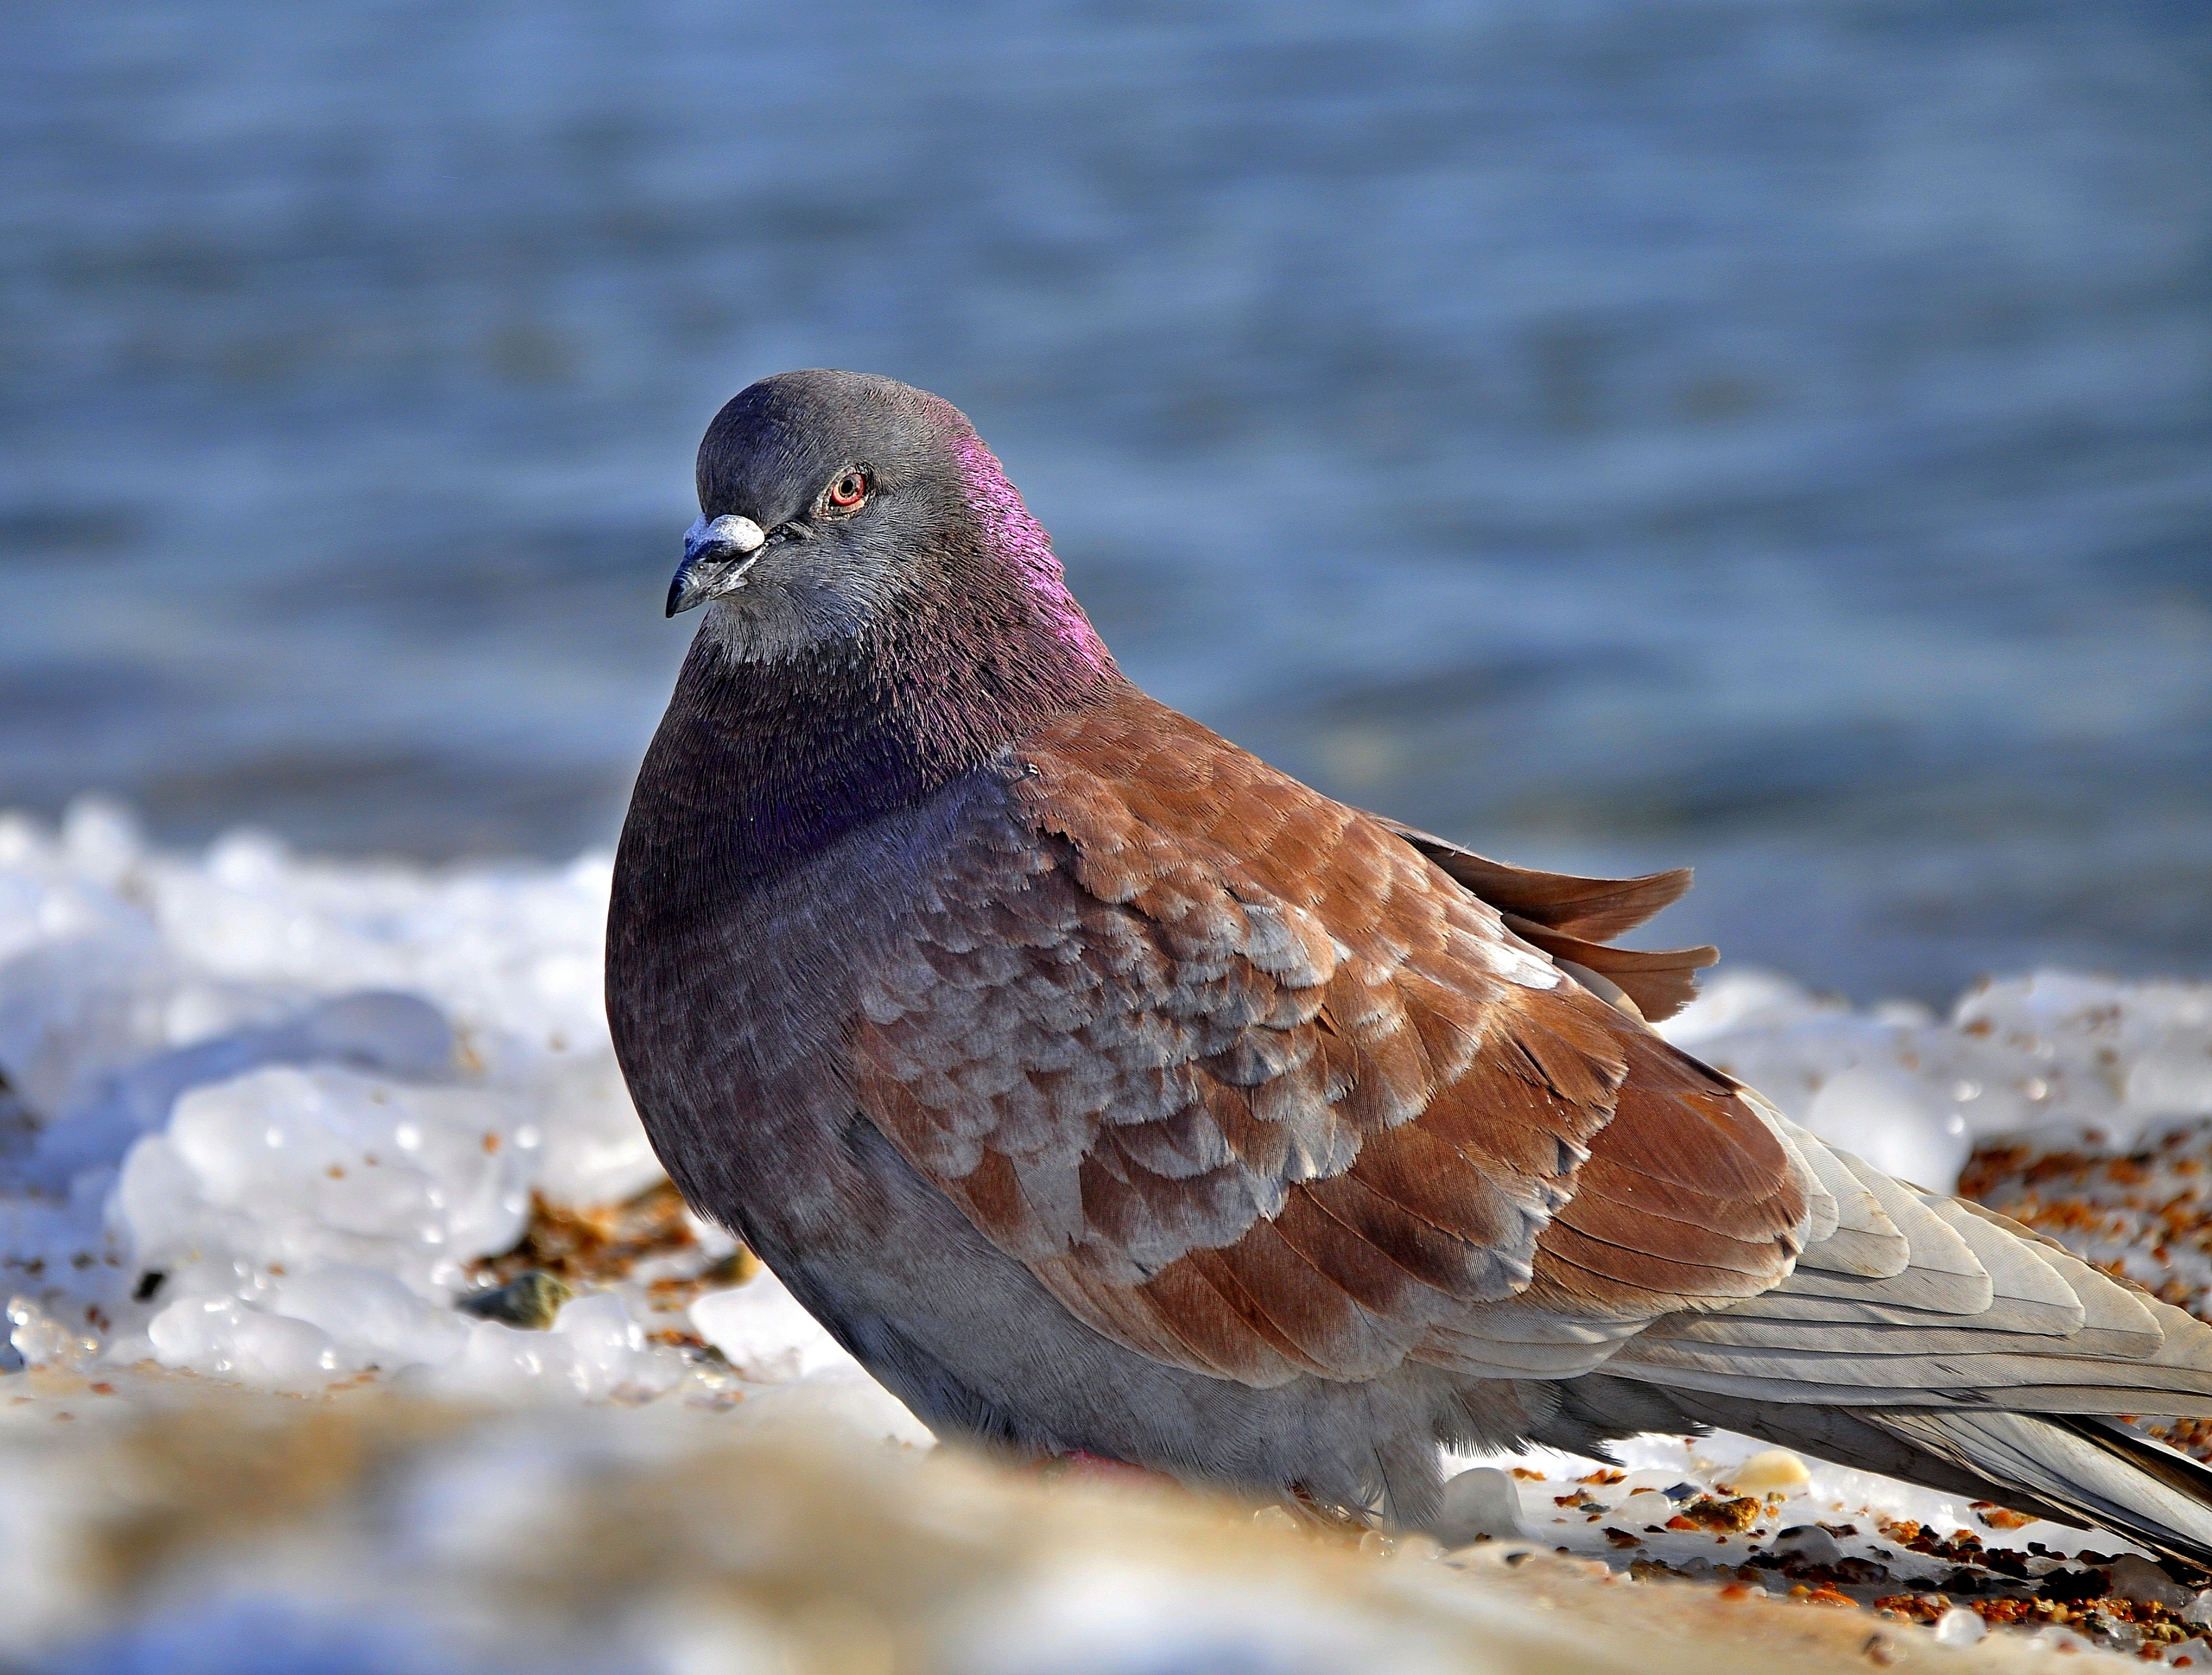 138323 download wallpaper Animals, Dove, Bird, Snow, Ice screensavers and pictures for free